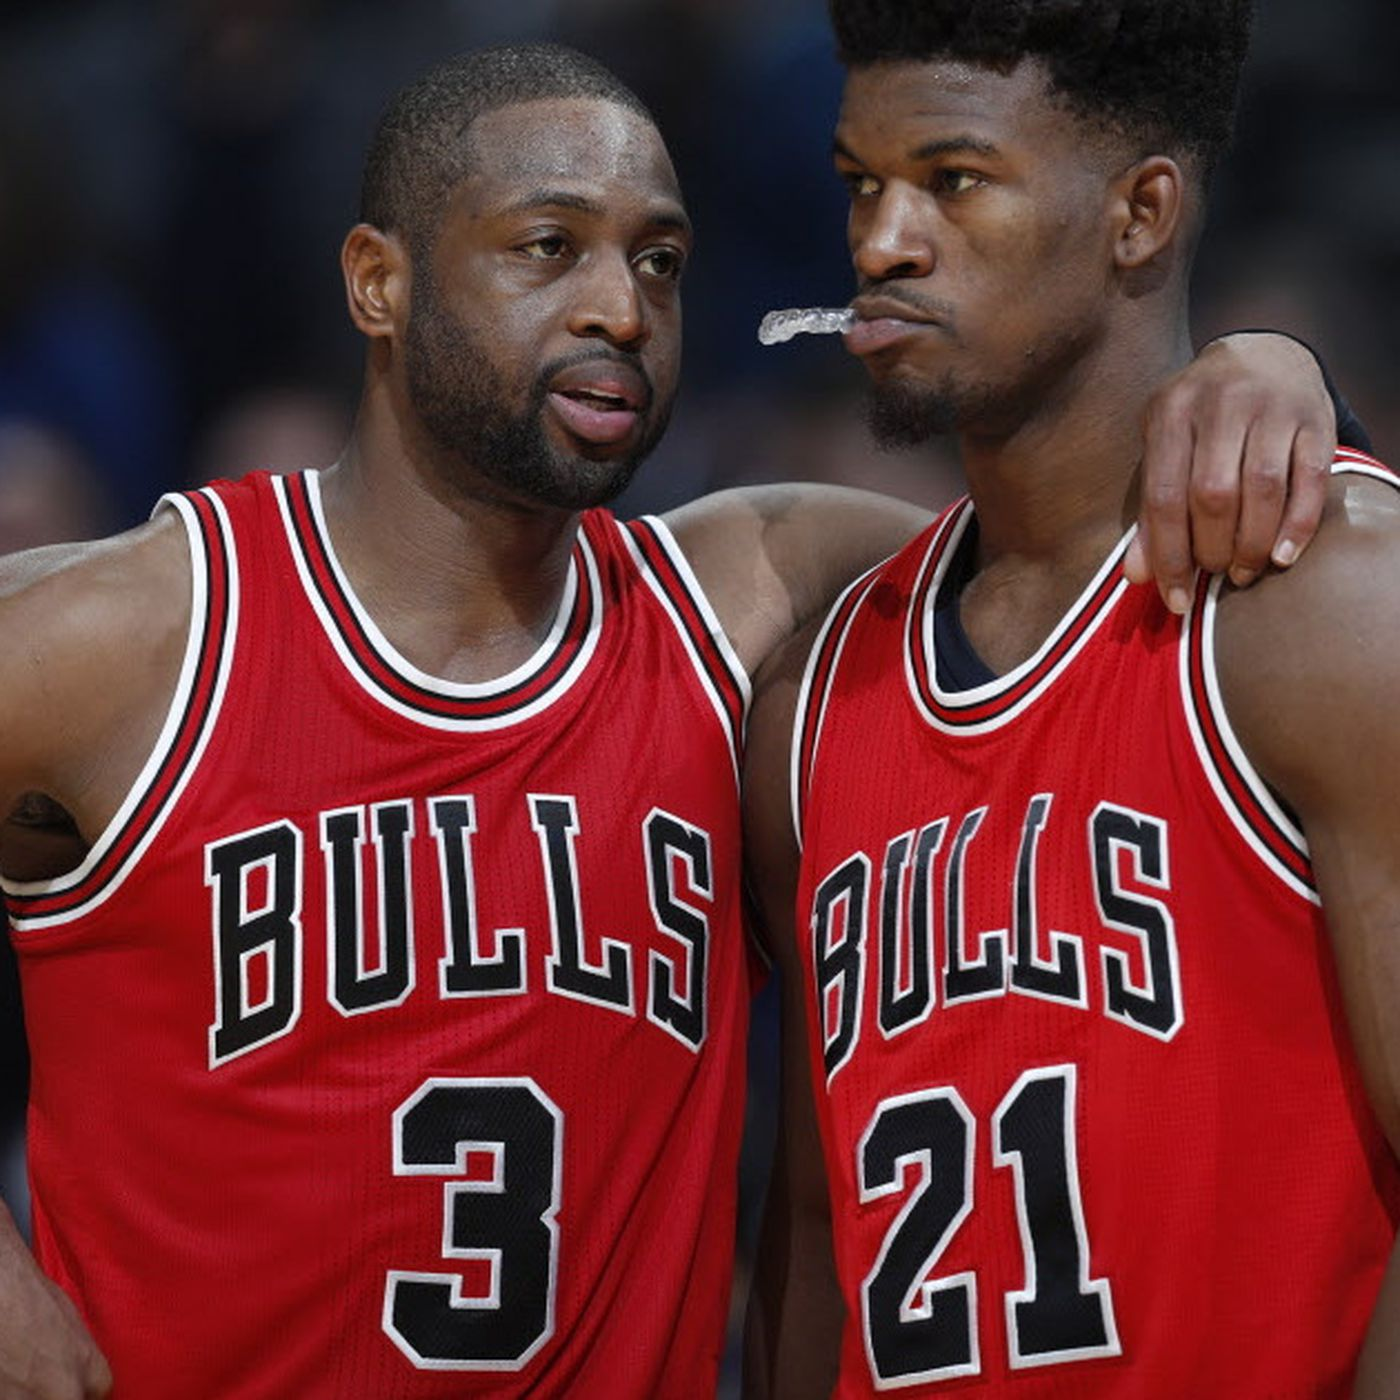 Ex Bulls Snit Dwyane Wade Threatens Jimmy Butler Over Gabrielle Union Quip Chicago Sun Times